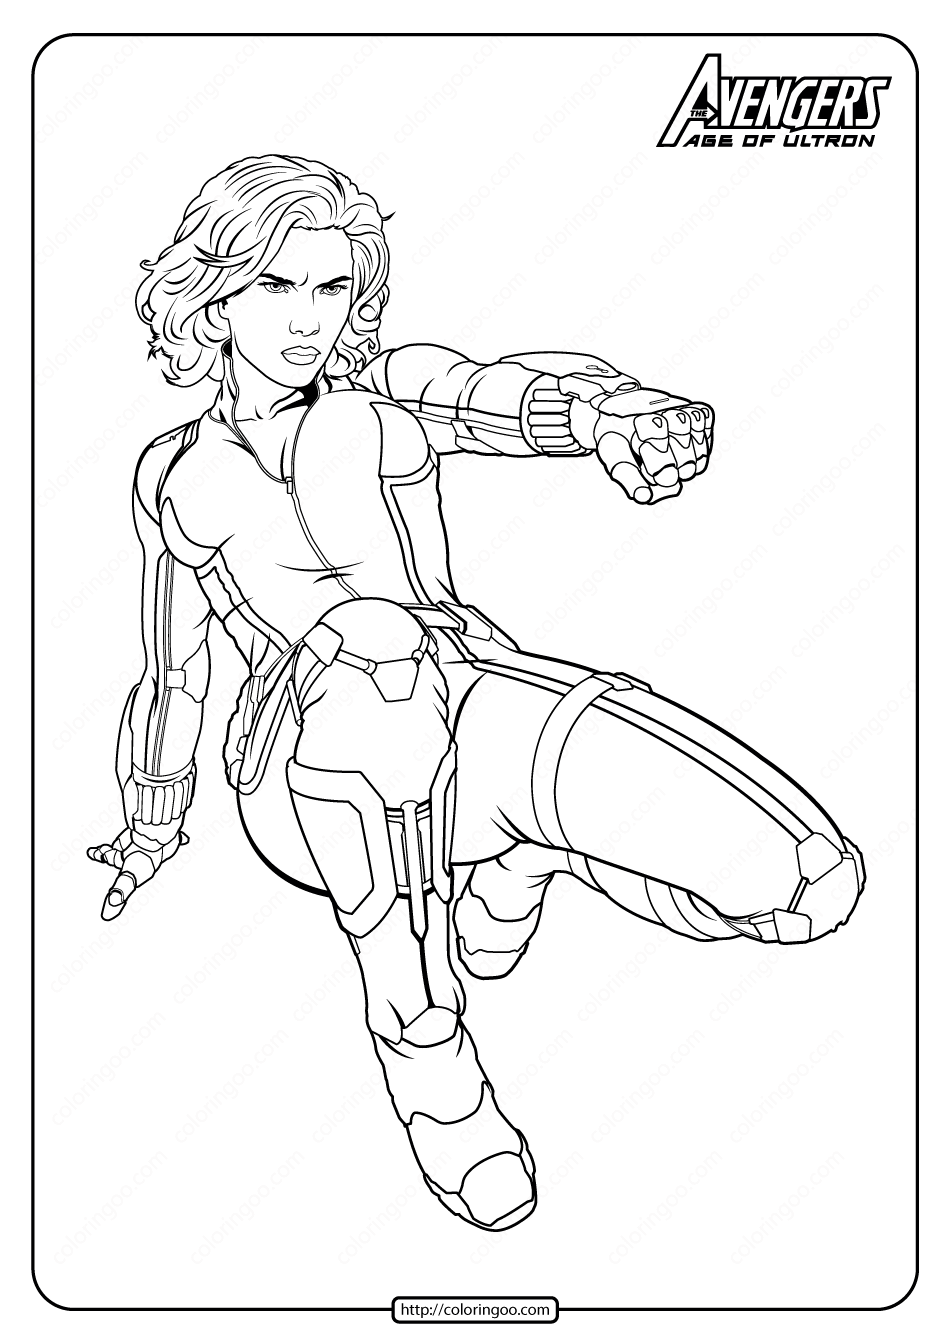 black widow marvel coloring pages black widow from marvel coloring pages free printable black widow marvel coloring pages